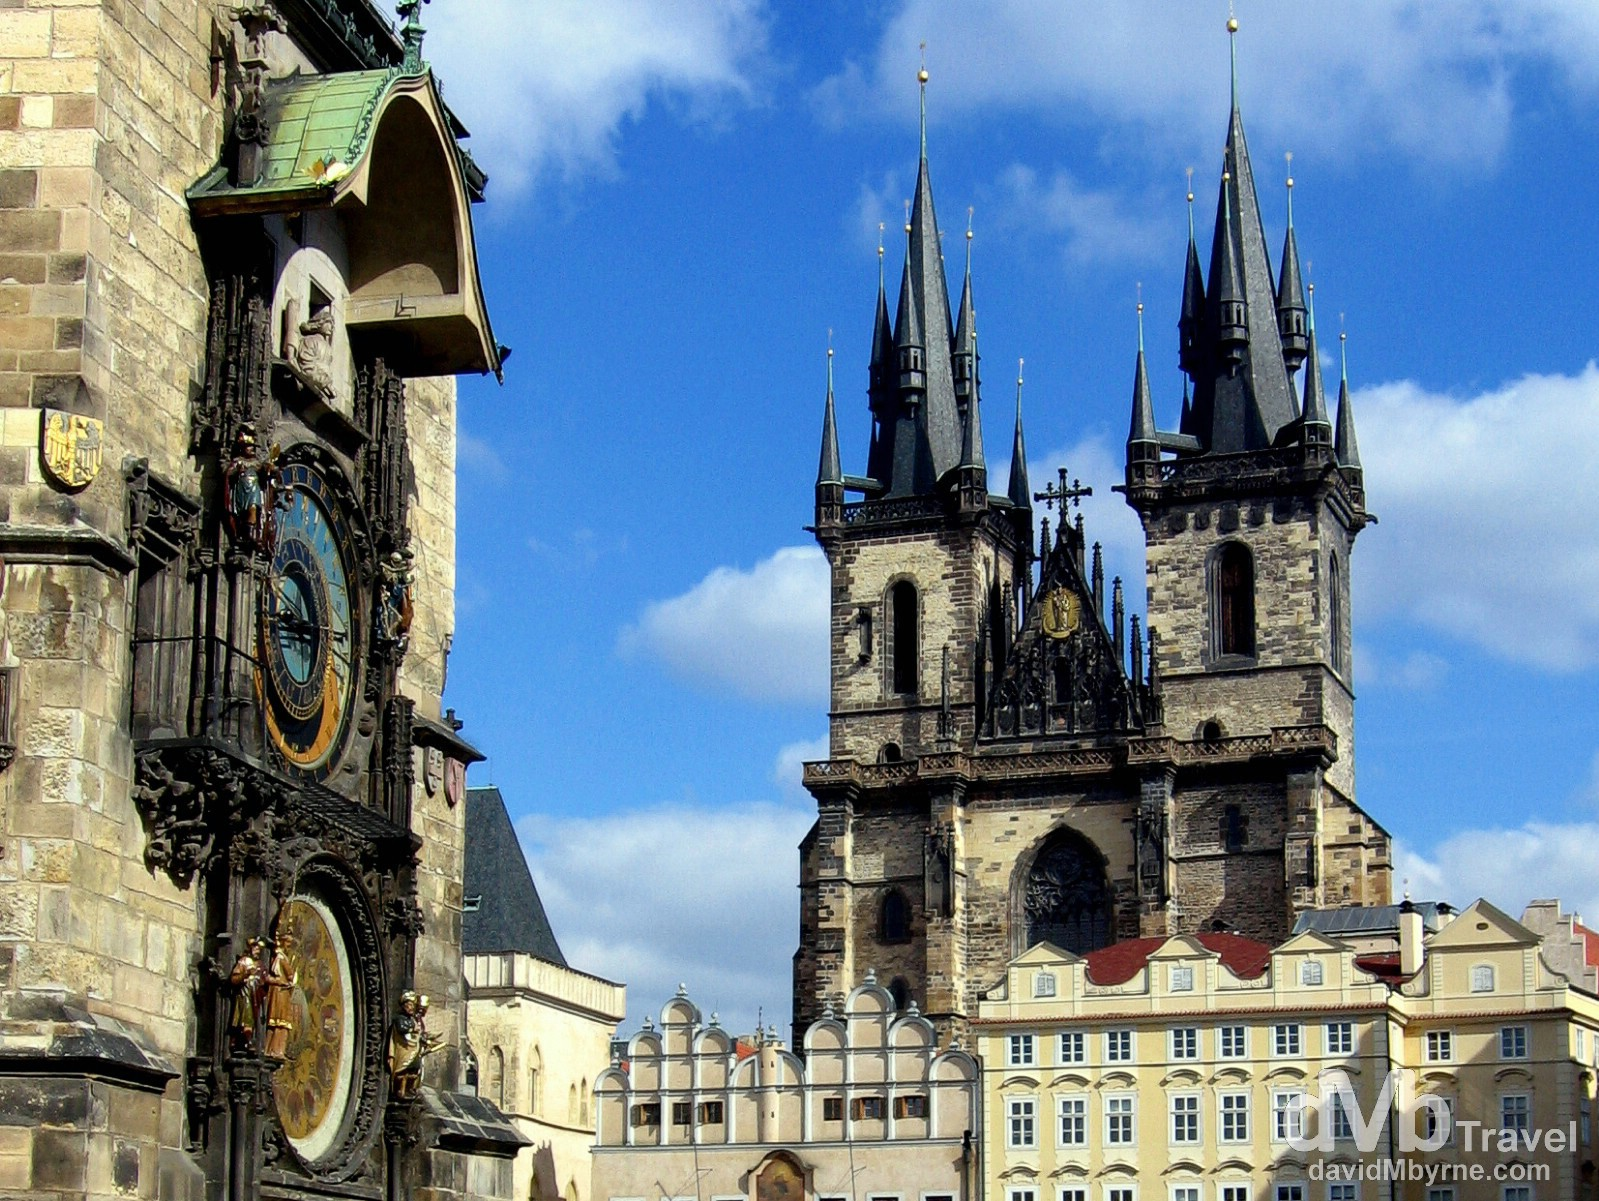 20 TopRated Tourist Attractions in Prague  PlanetWare